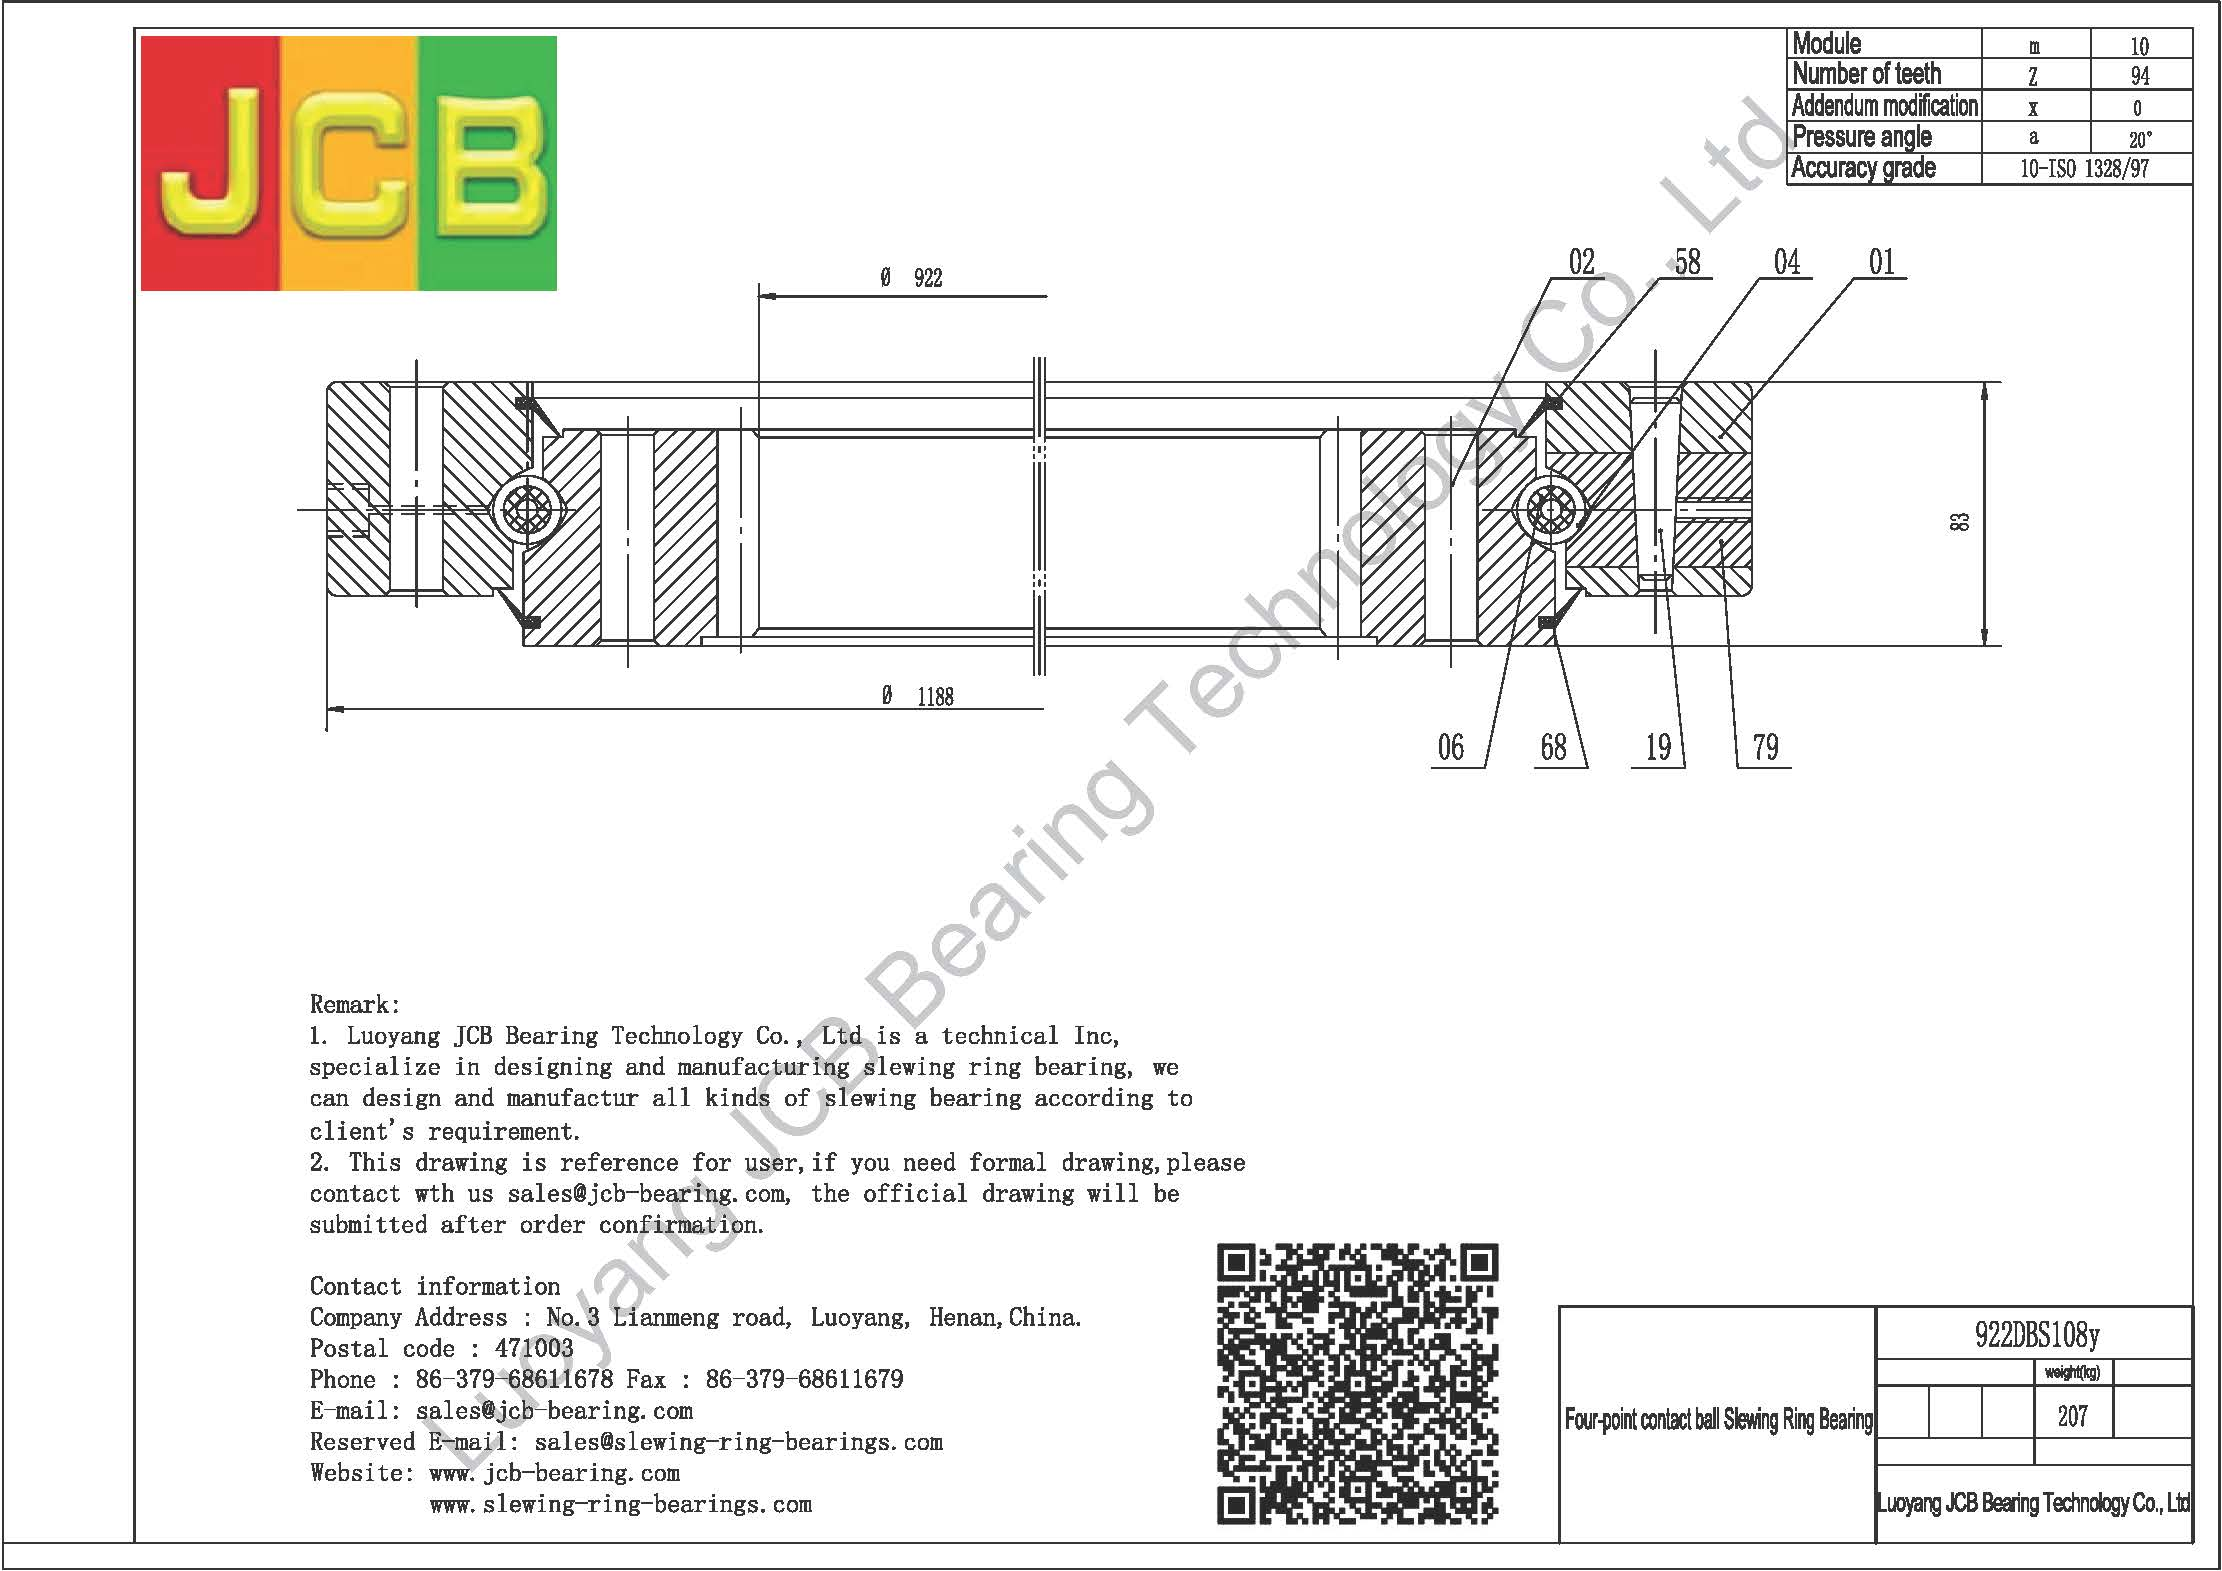 DRAWINGS NSK - MANUFACTUTERE OF QUALITY SLEWING BEARING